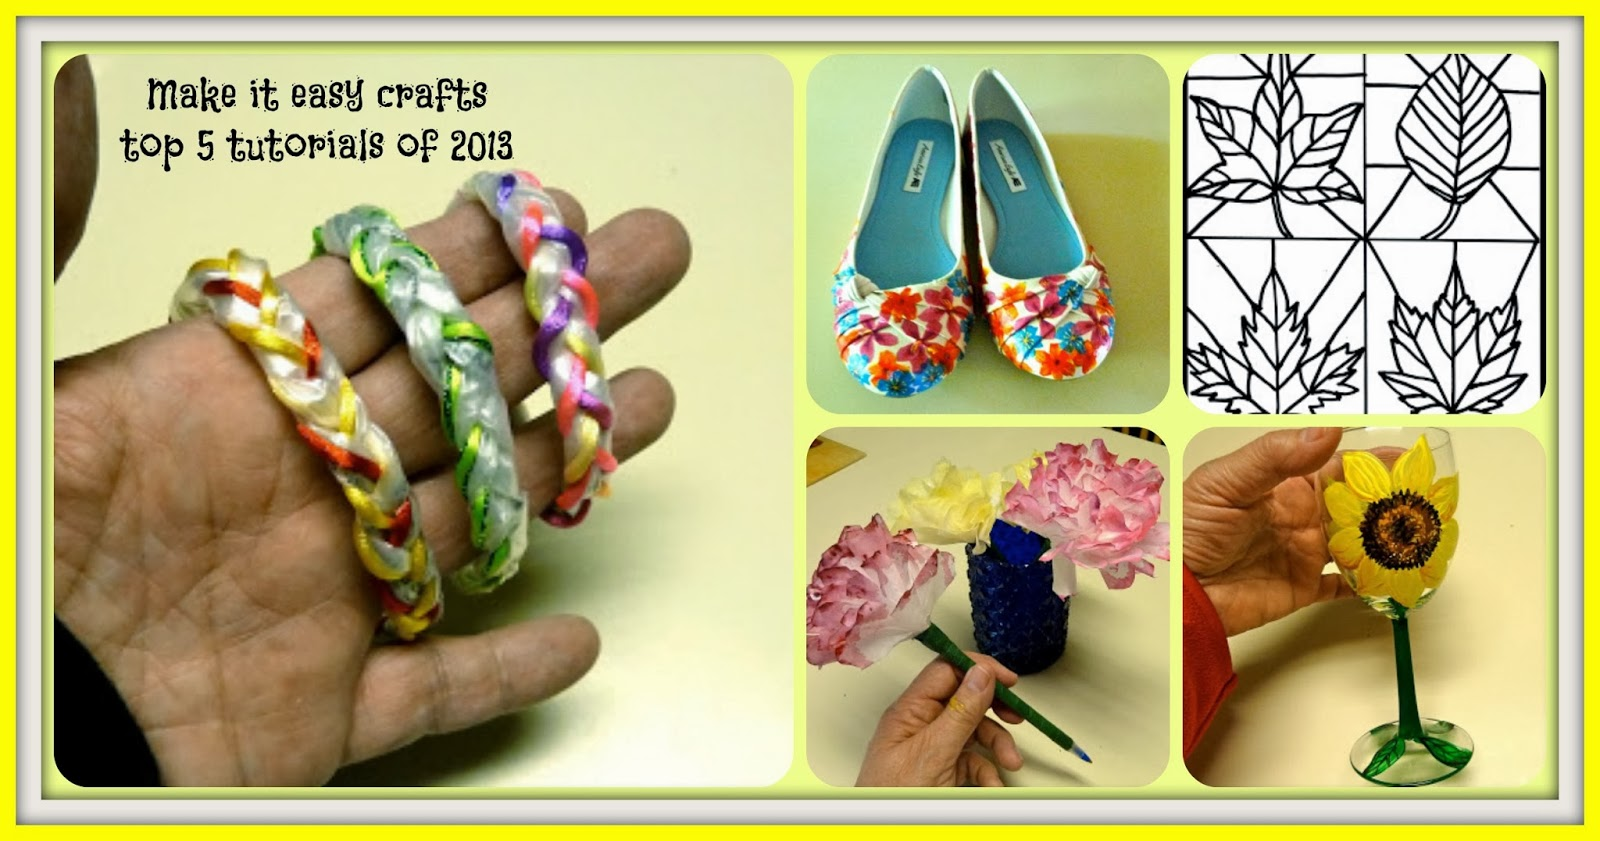 2013 Was A Great Year For Crafting I Thought It Would Be Nice To Post The Top 5 Tutorials From Make Easy Crafts Readers Enjoy Them In 2014 As